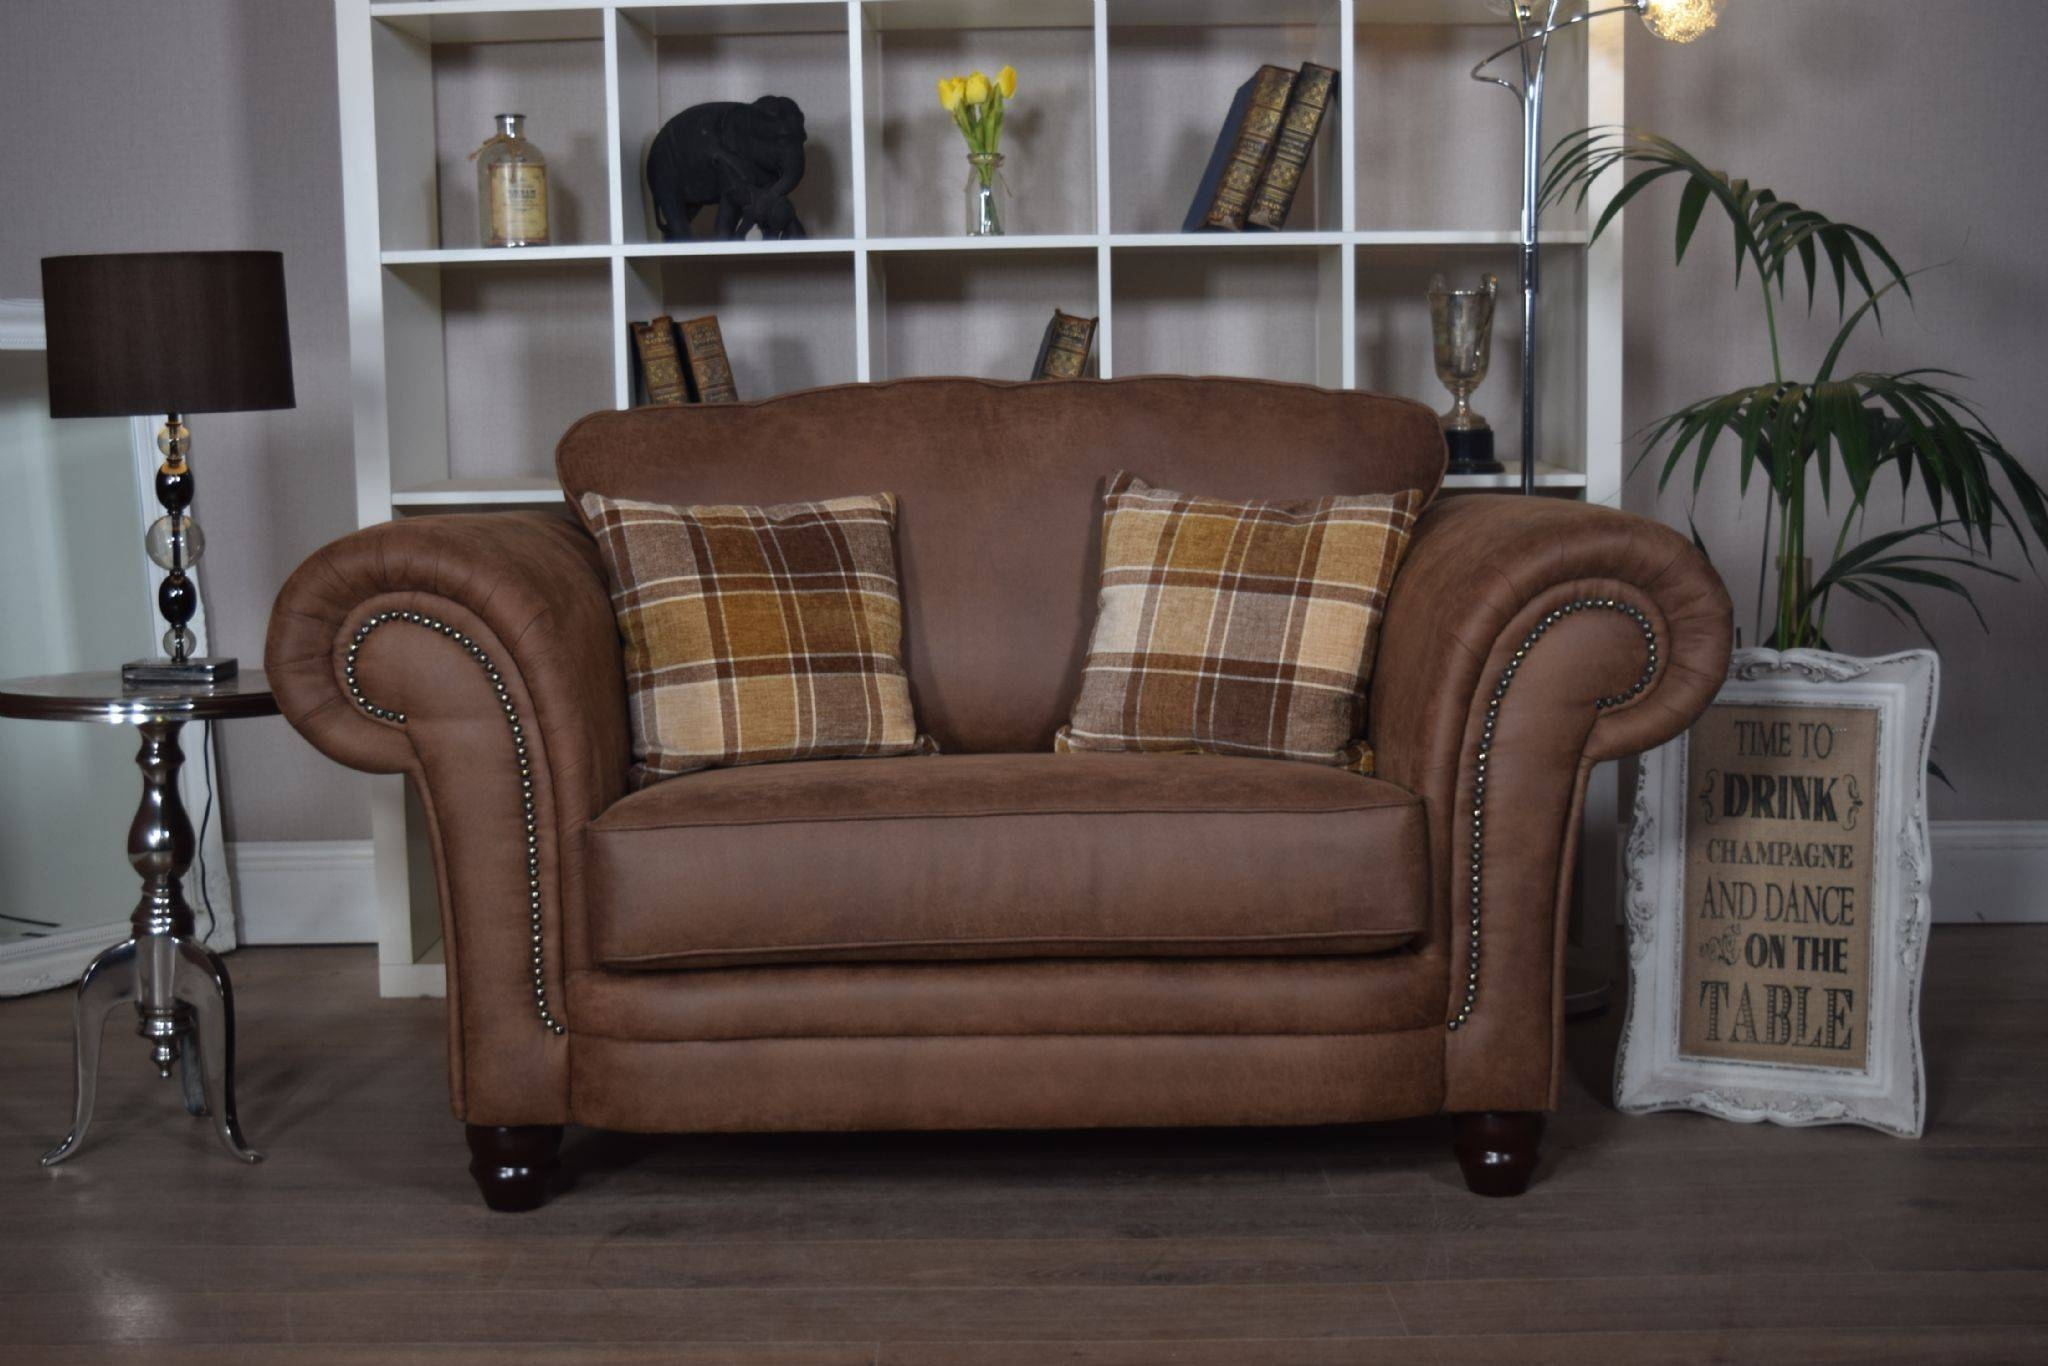 Set Abbey Downton 3 Seater Sofa & Large Cuddle Chair – Tan Fitted Back With Regard To 3 Seater Sofa And Cuddle Chairs (View 20 of 30)